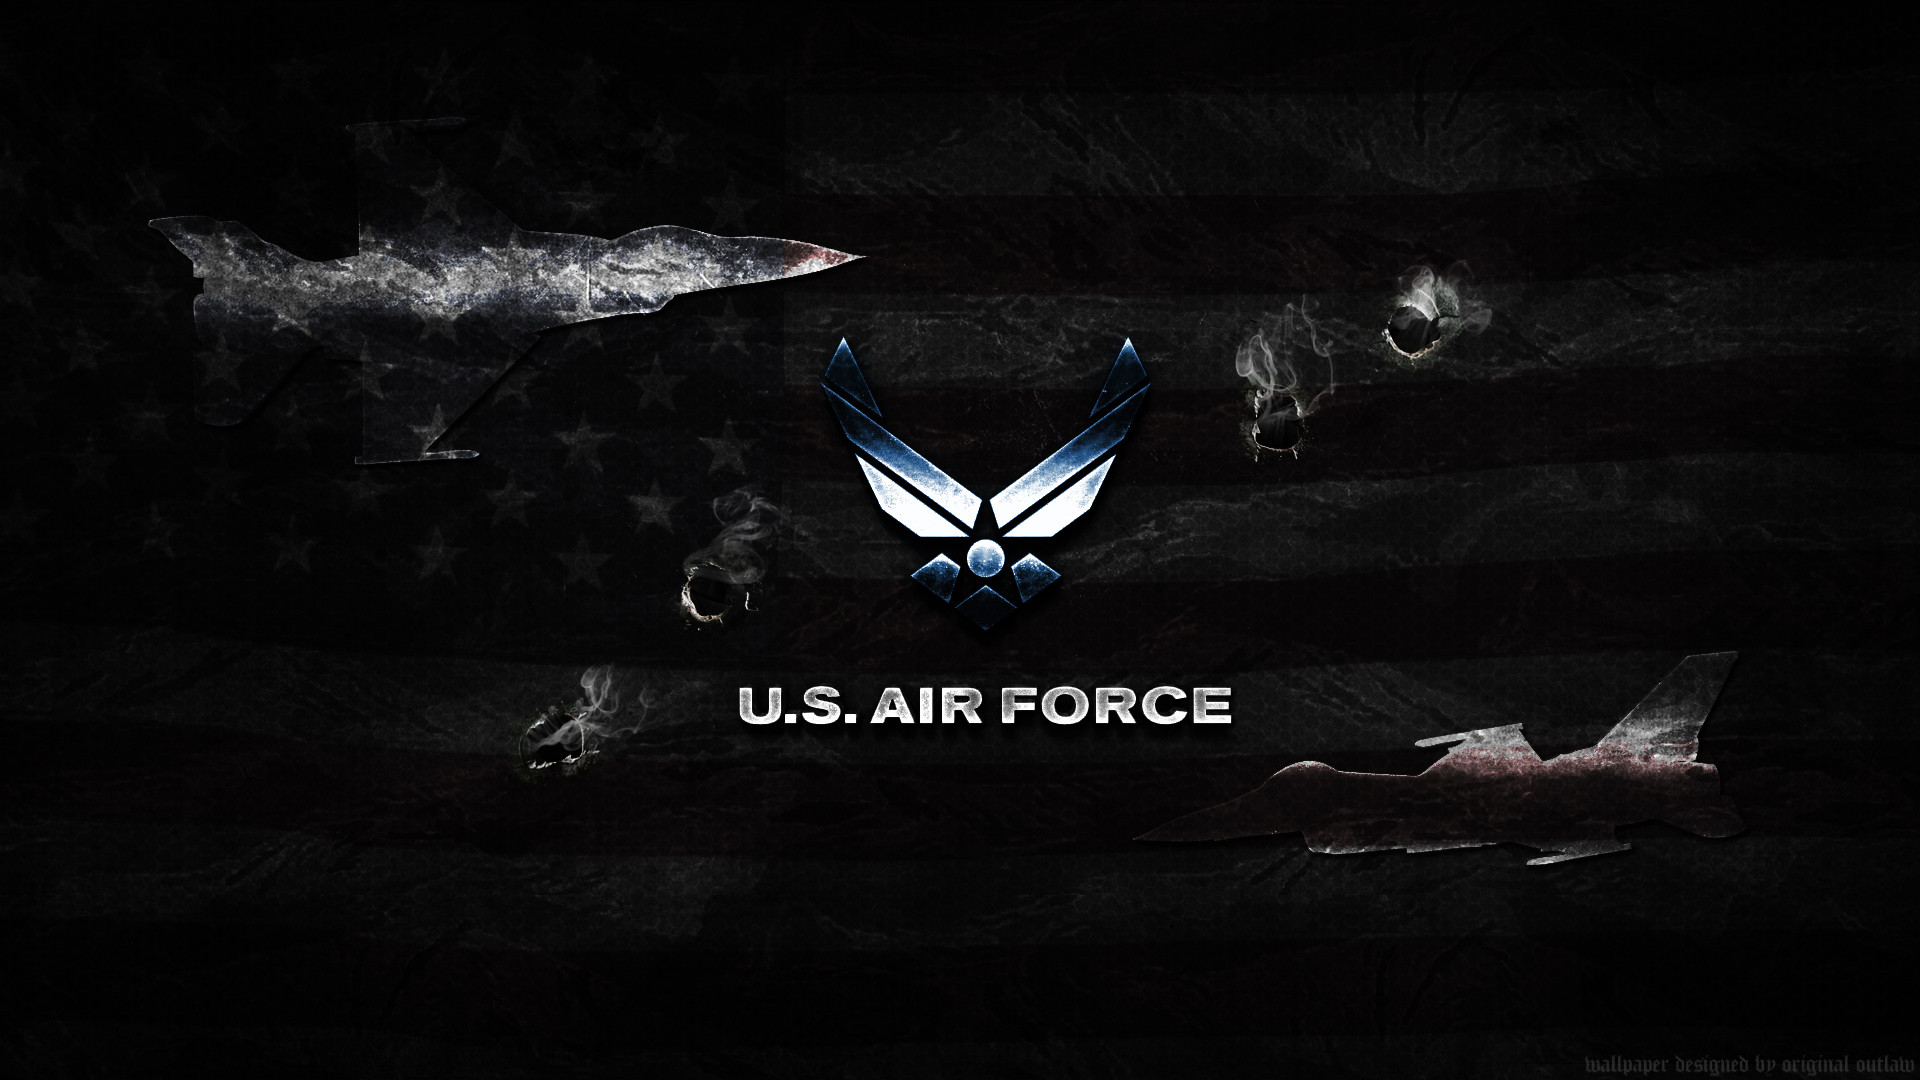 1920x1080 - Air Force Wallpaper for iPhone 30